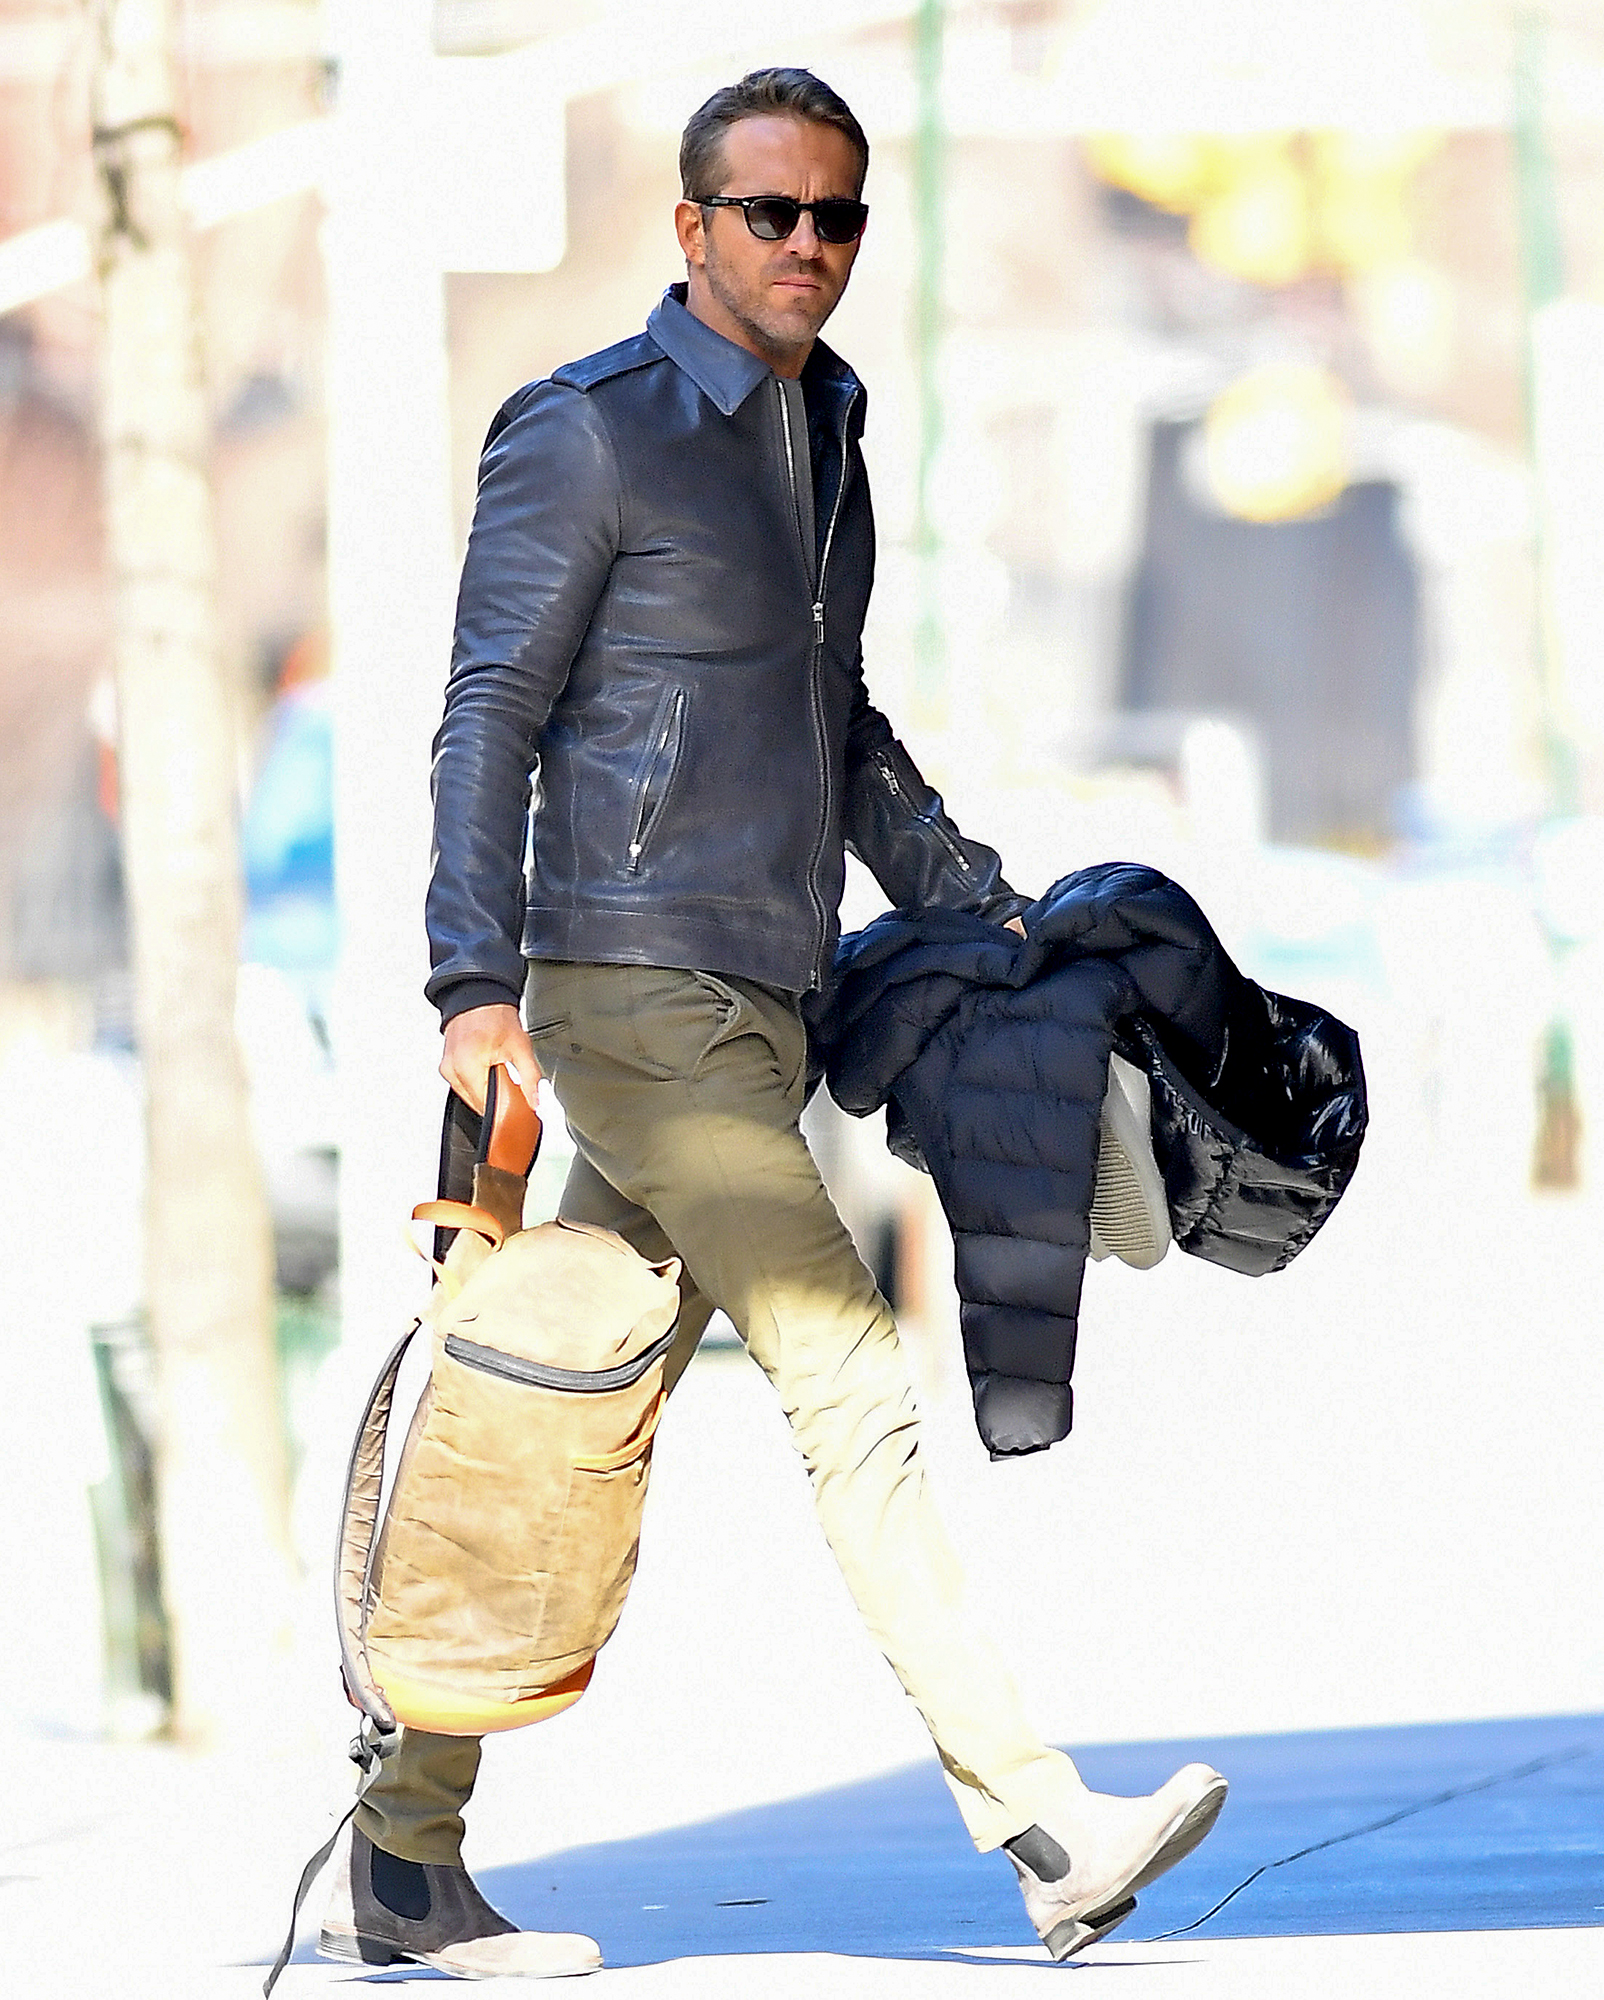 EXCLUSIVE: Ryan Reynolds Seen Carrying His Backpack In New York City